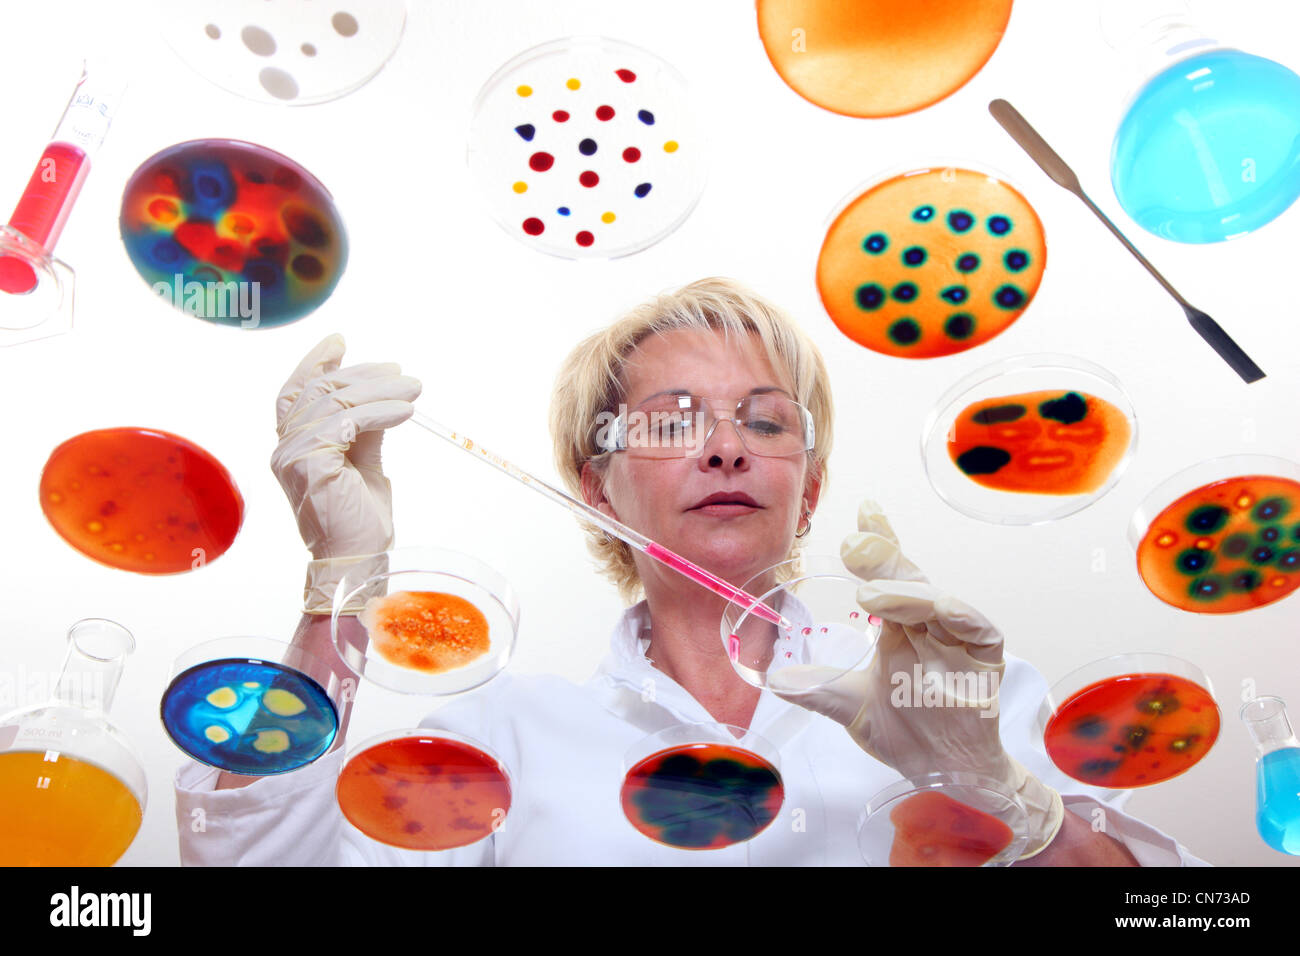 Laboratory technician working in the lab with bacteria cultures in Petri dishes. Seen through a glass table. - Stock Image